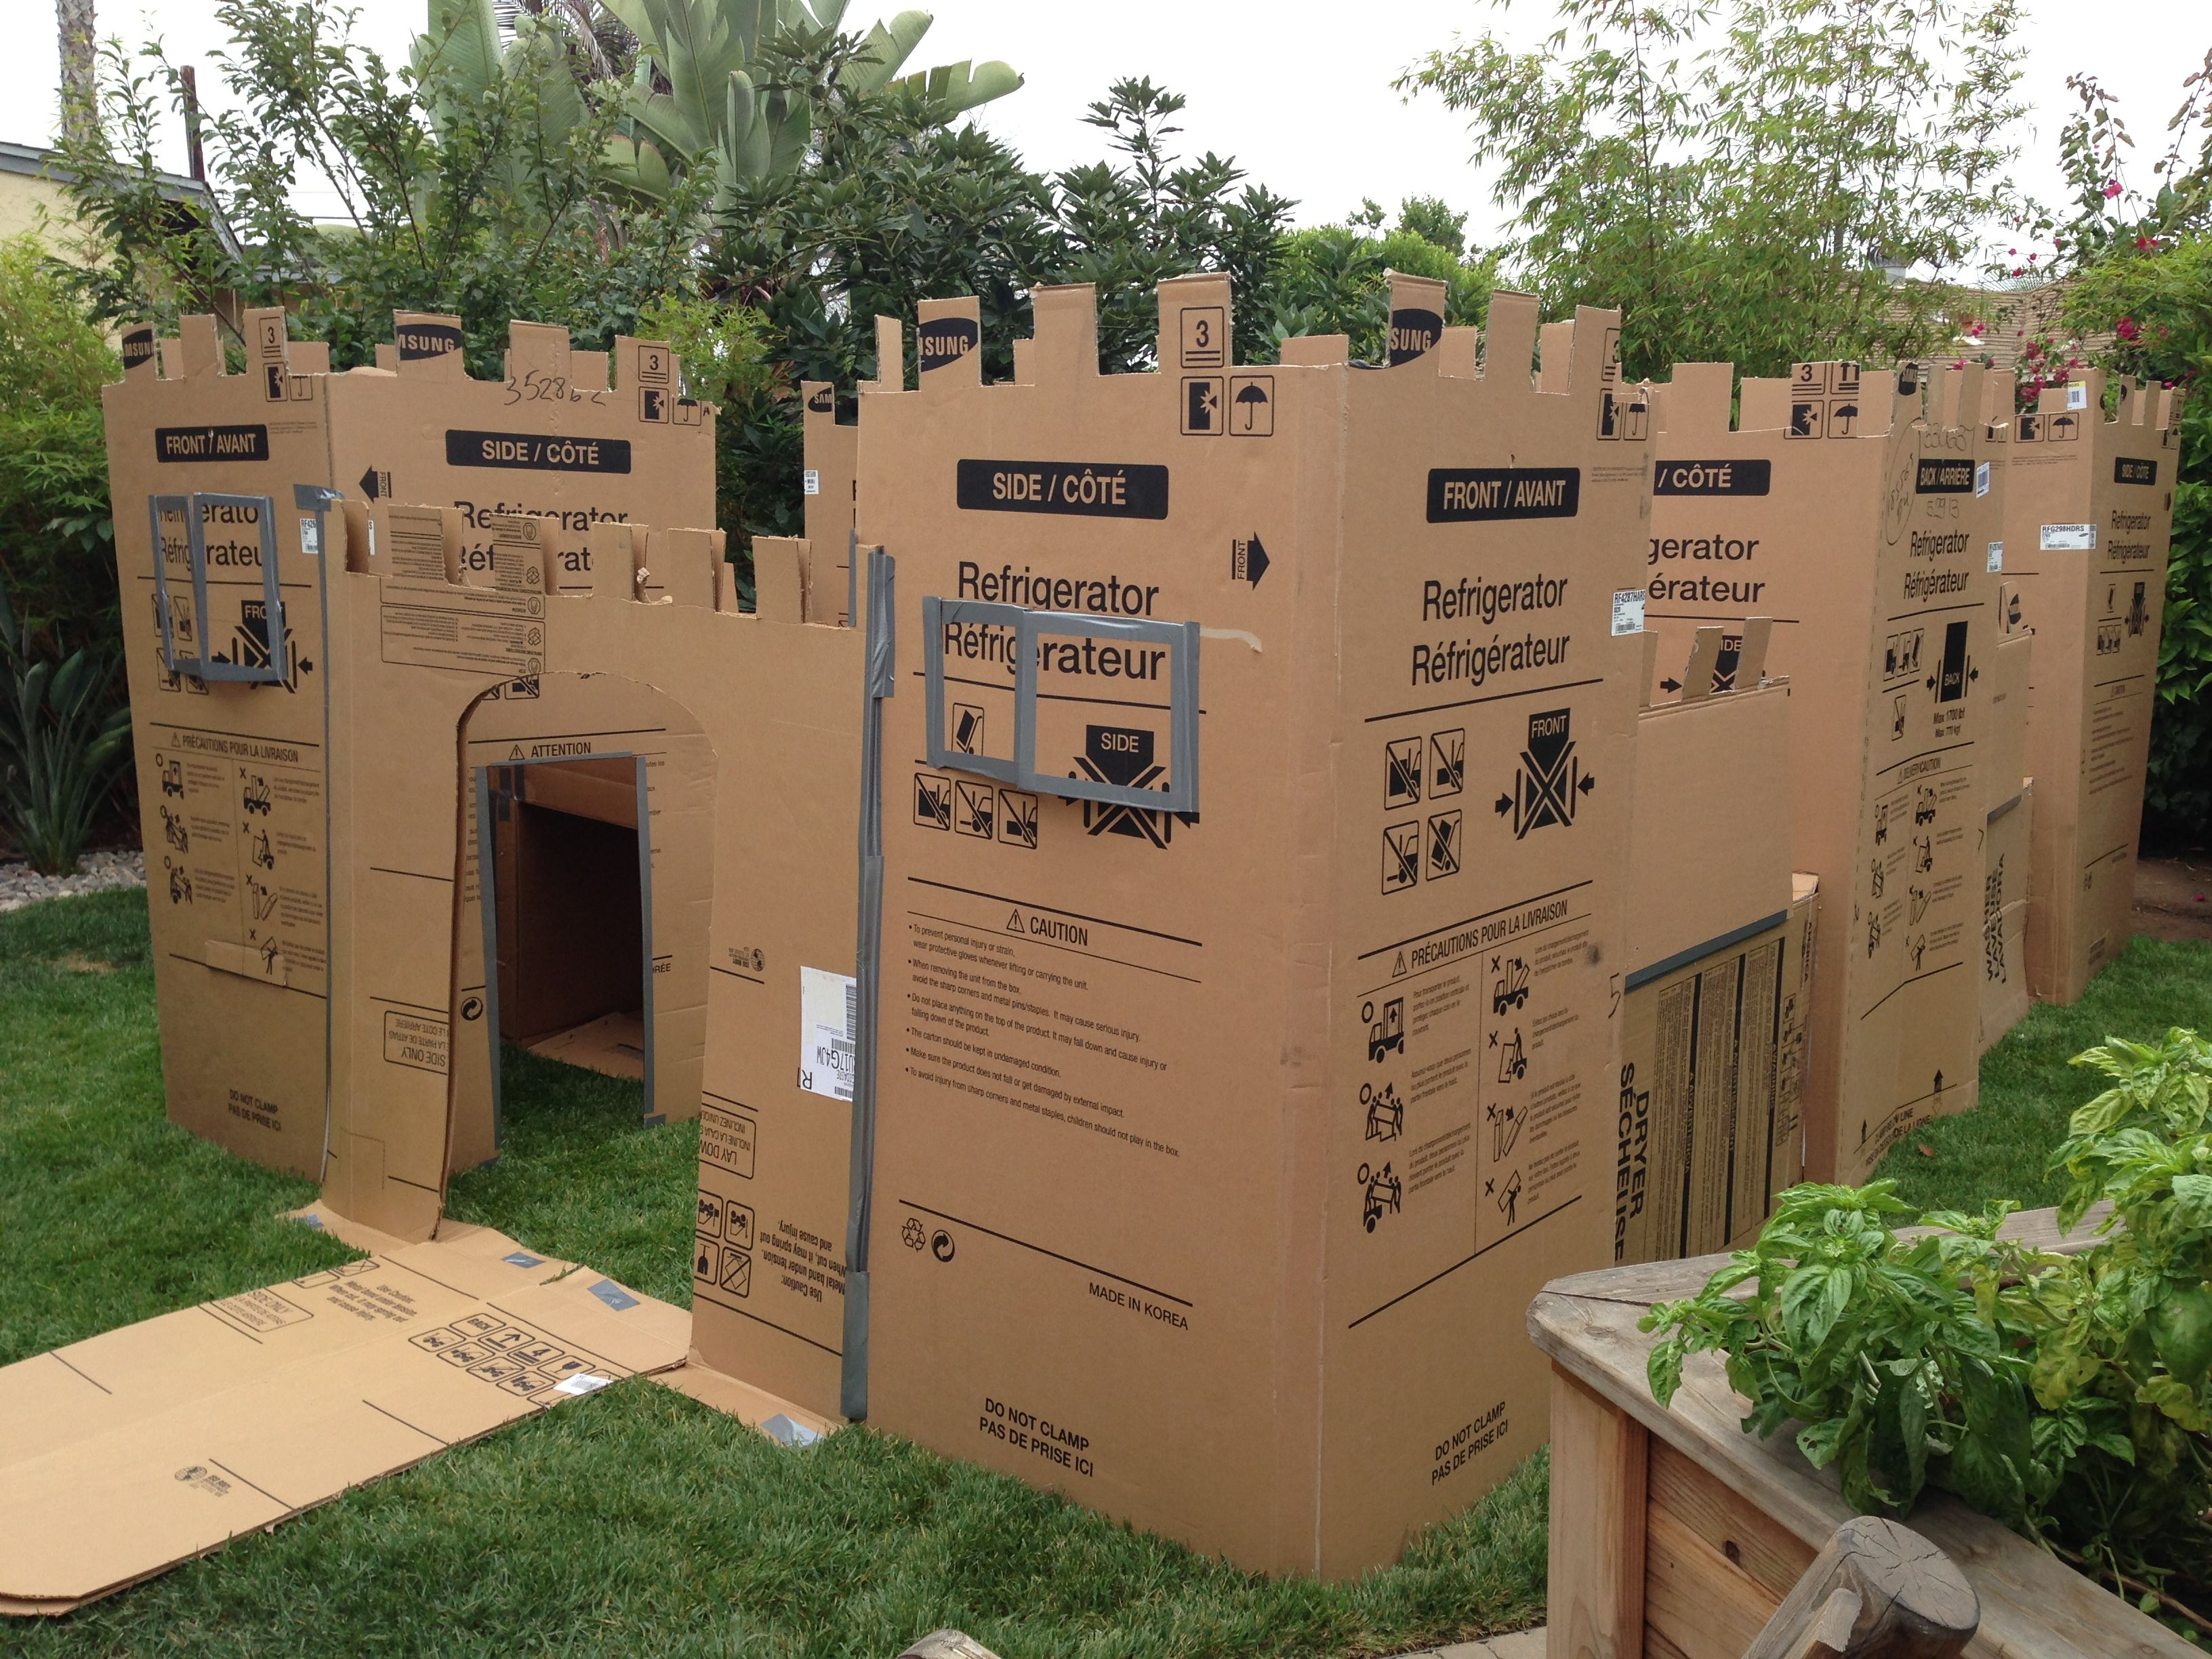 Best 25+ Cardboard boxes ideas on Pinterest   Recycling boxes ...